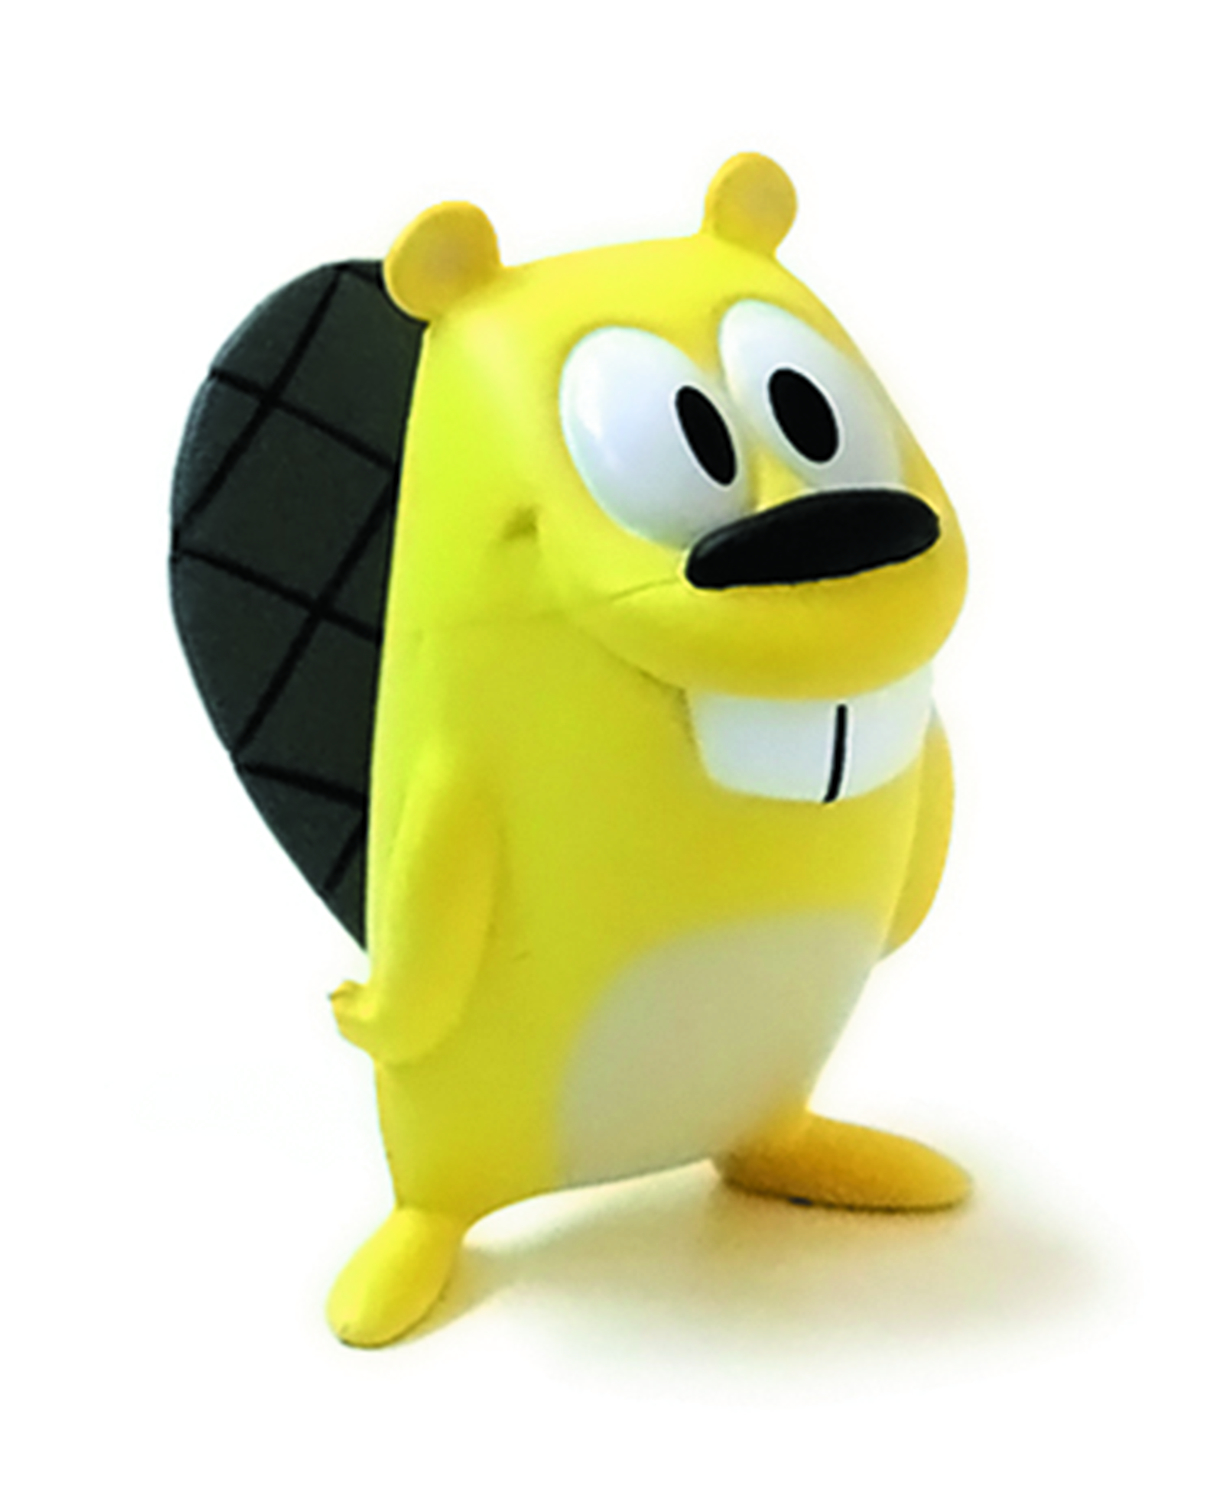 GET LUCKY BEAVER YELLOW 1.5IN VINYL FIG